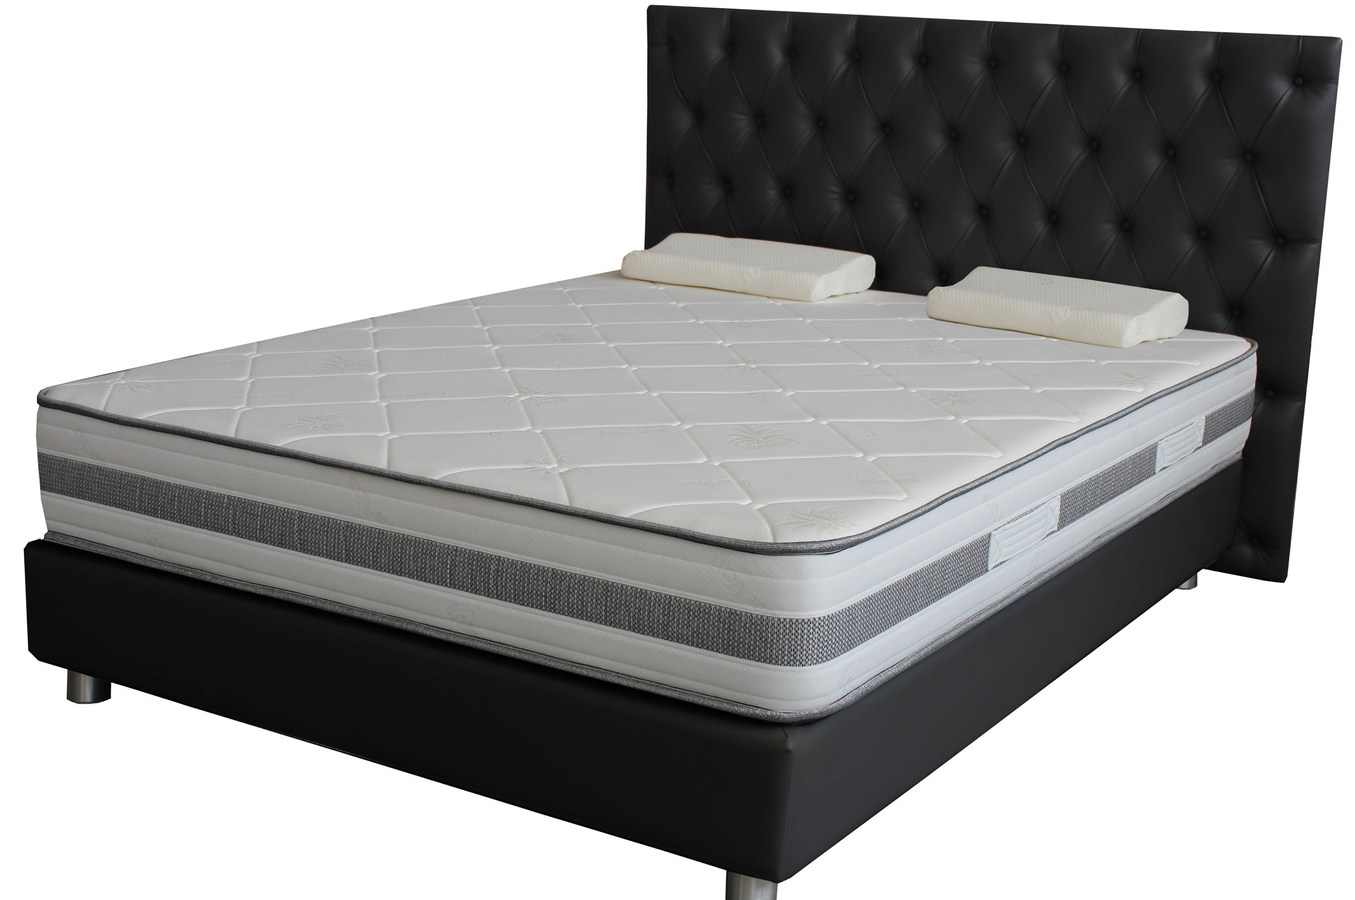 matelas hypnia volupte memo 90x190 4114663 darty. Black Bedroom Furniture Sets. Home Design Ideas